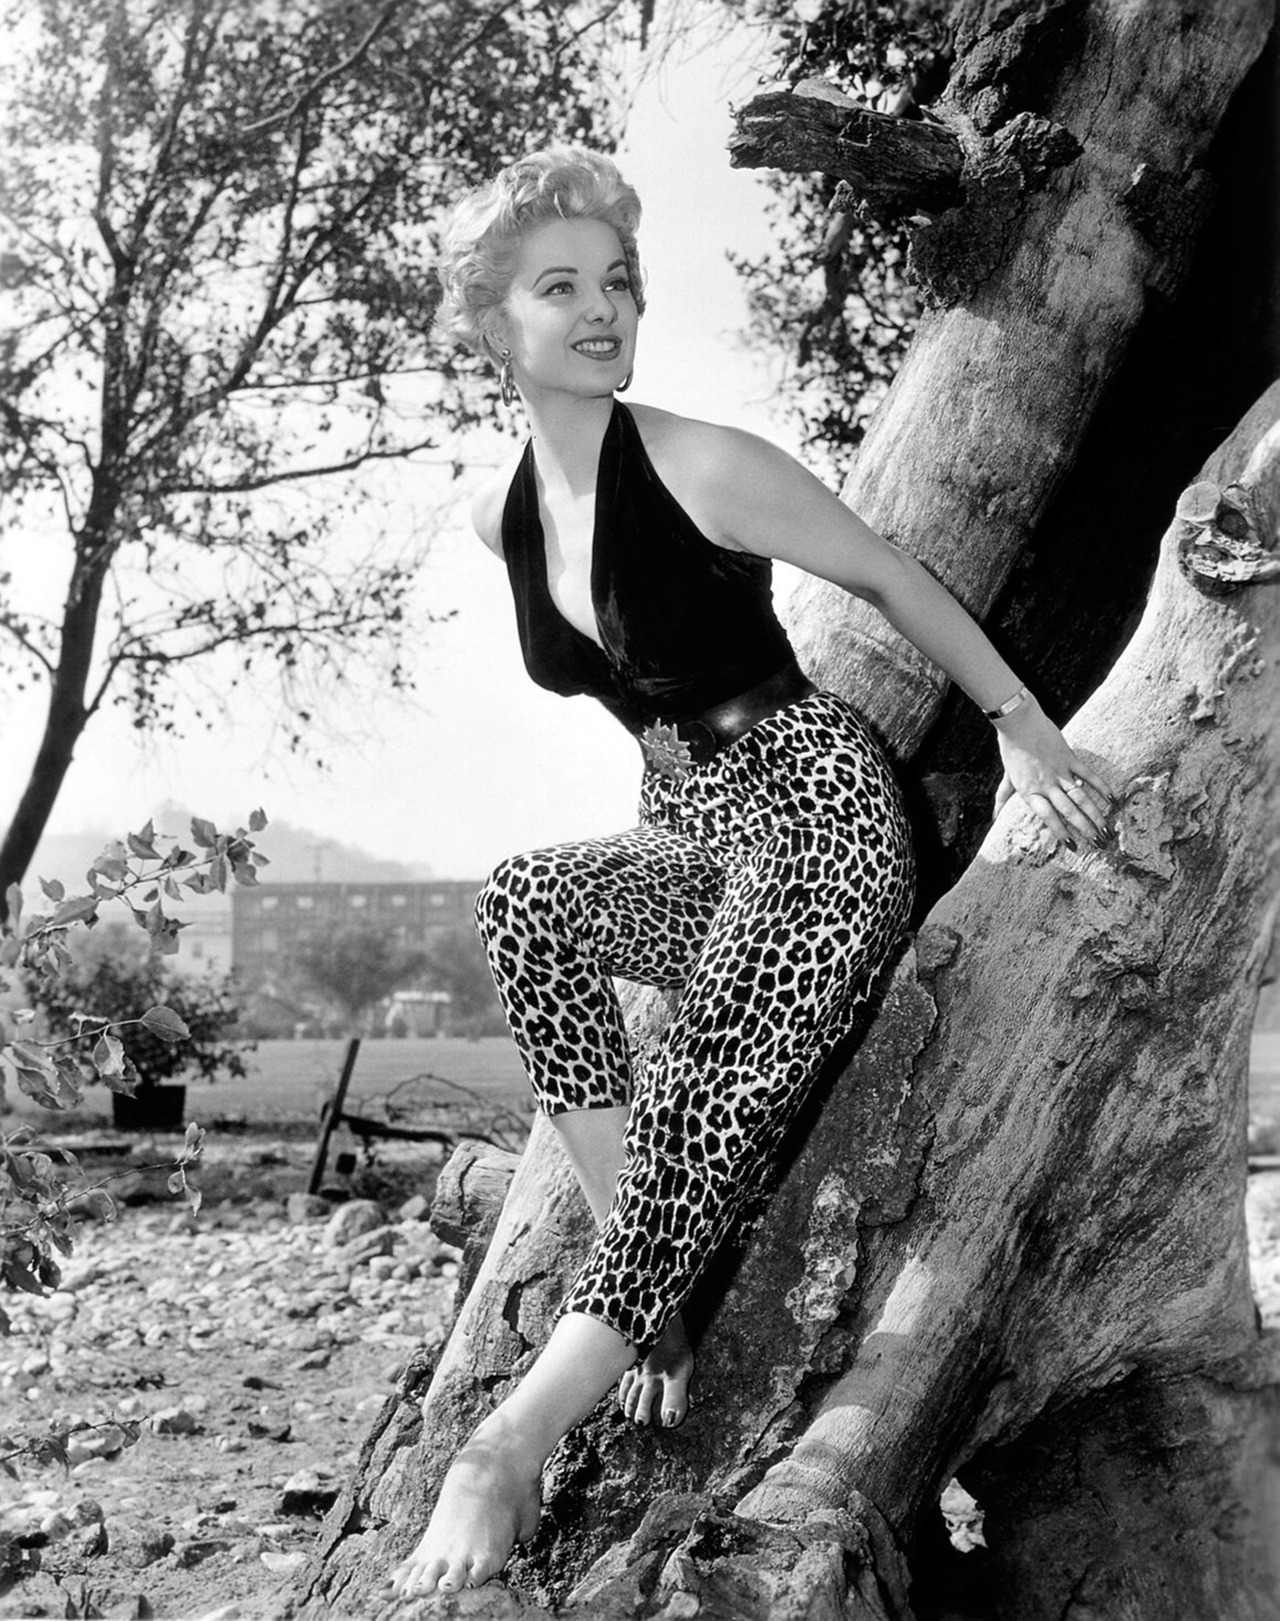 drunkcle:  Oh, the things I would have done to Martha Hyer. OK, well, let's be honest, I mostly would have disappointed her, as I've disappointed most of the women in my life. But I would have enjoyed it, and that's what really matters.